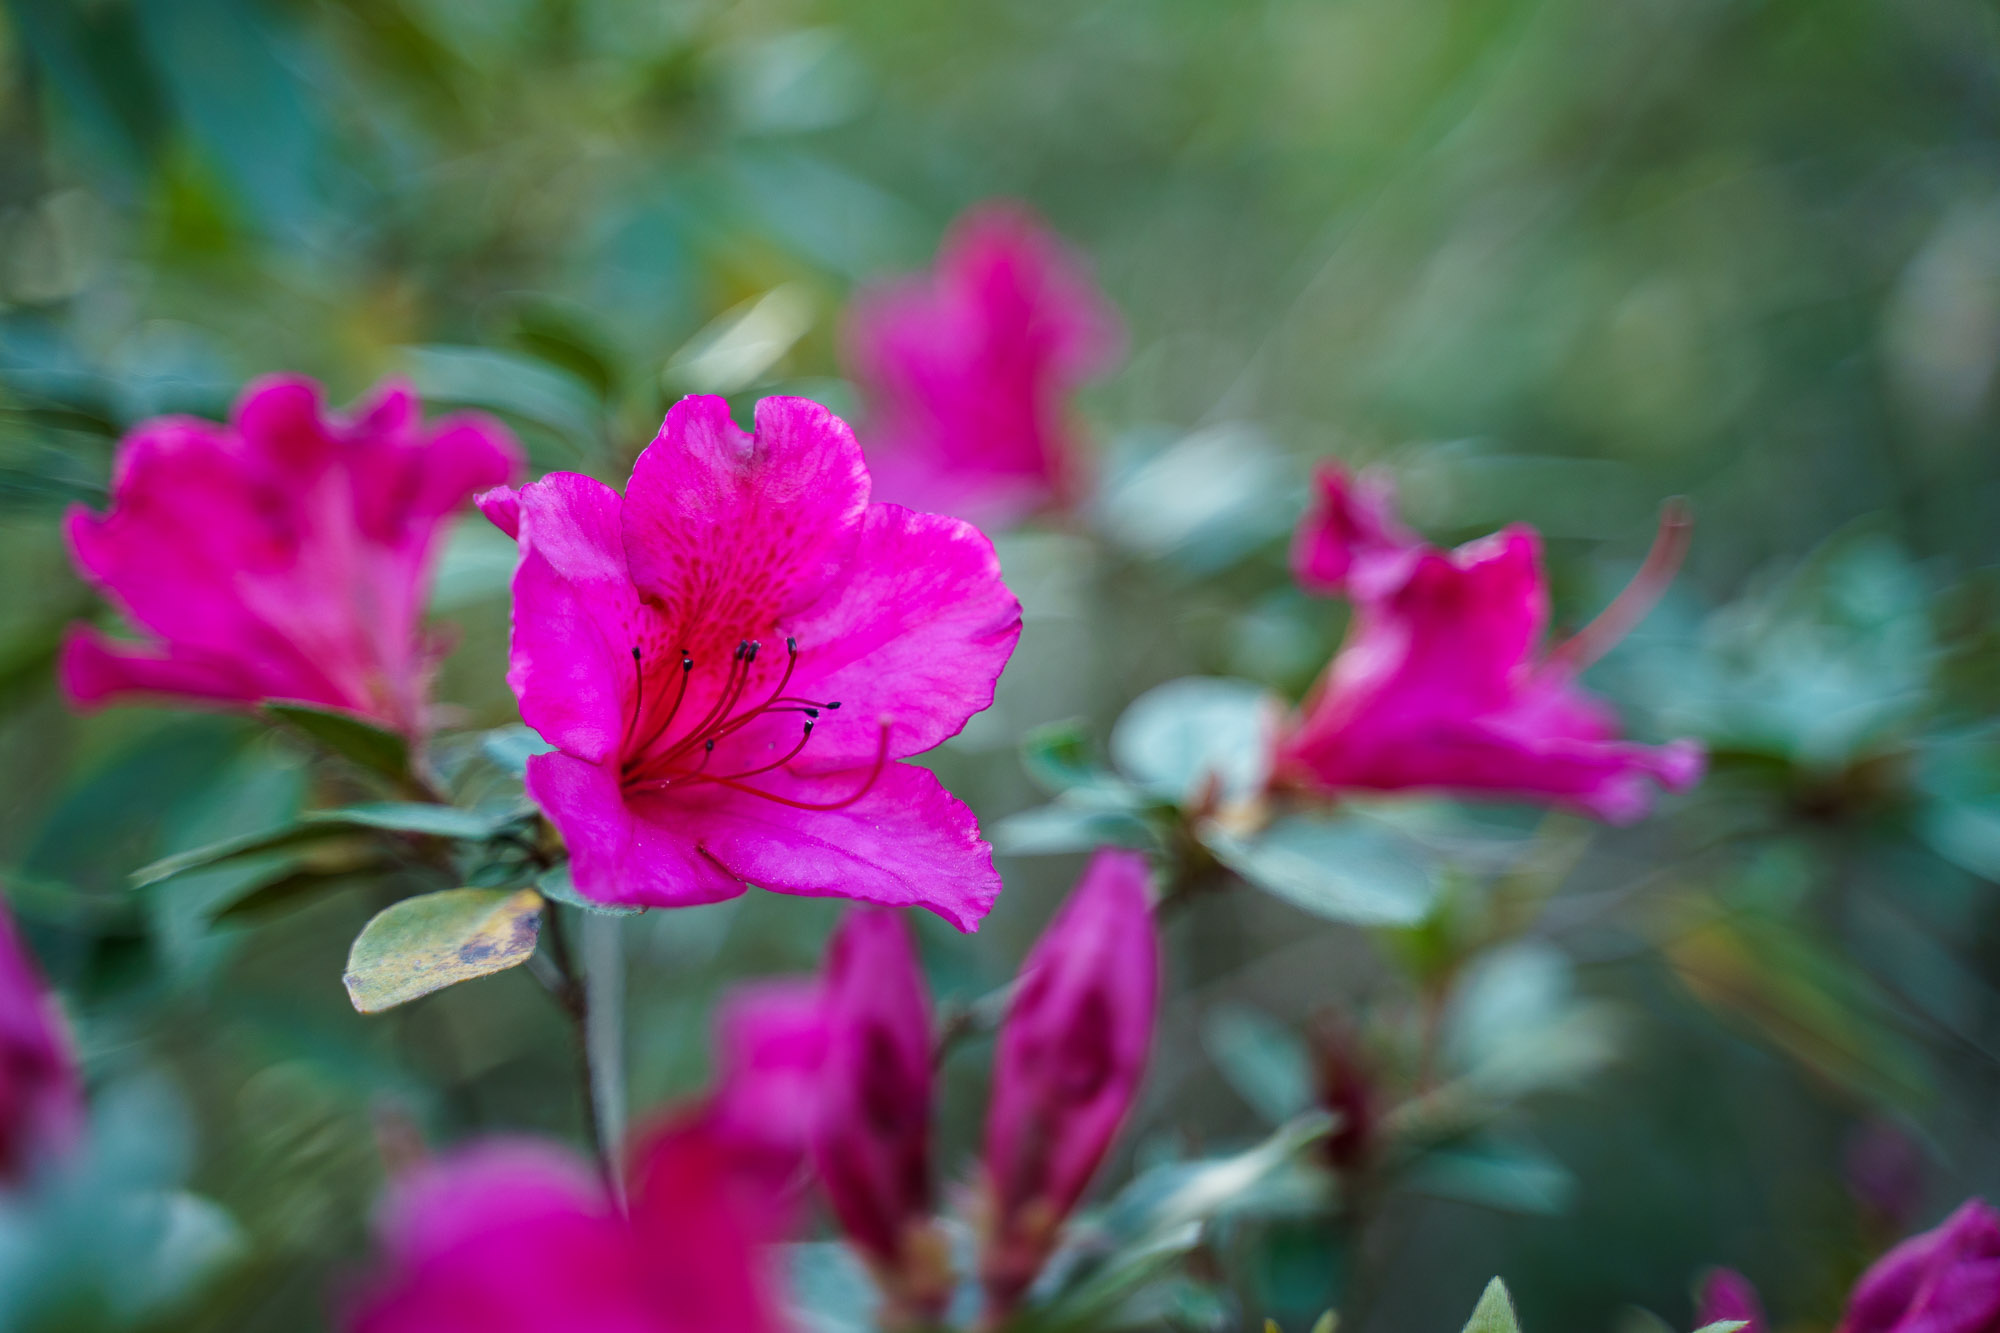 A bright pink blooming Azalea